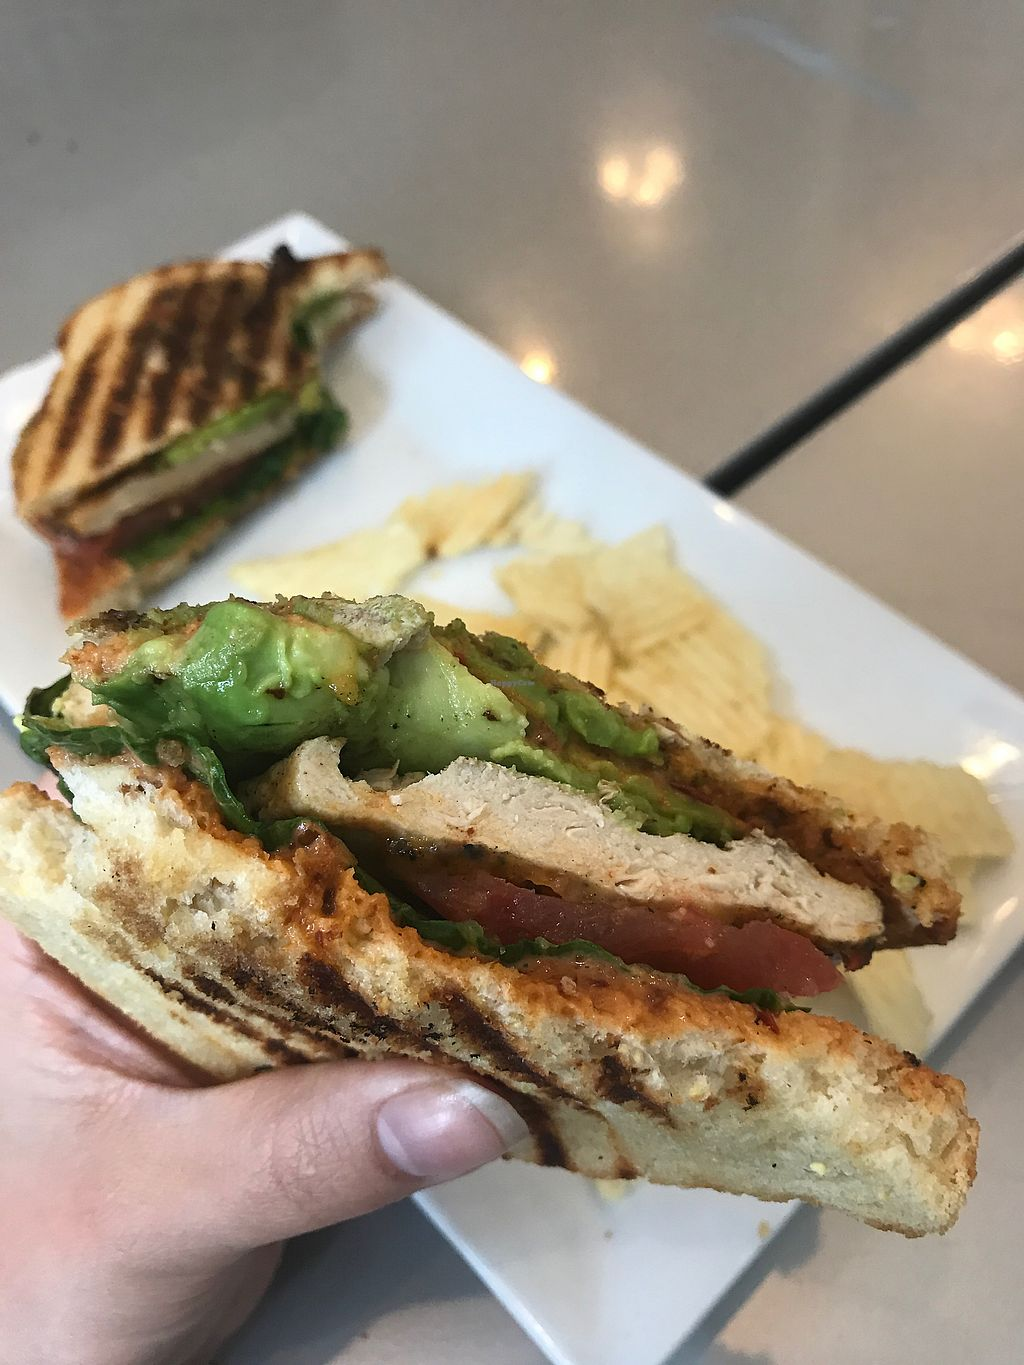 """Photo of Blondie's Vegan  by <a href=""""/members/profile/SamanthaRedning"""">SamanthaRedning</a> <br/>Chick'n chipotle avocado melt <br/> February 19, 2018  - <a href='/contact/abuse/image/78289/361329'>Report</a>"""